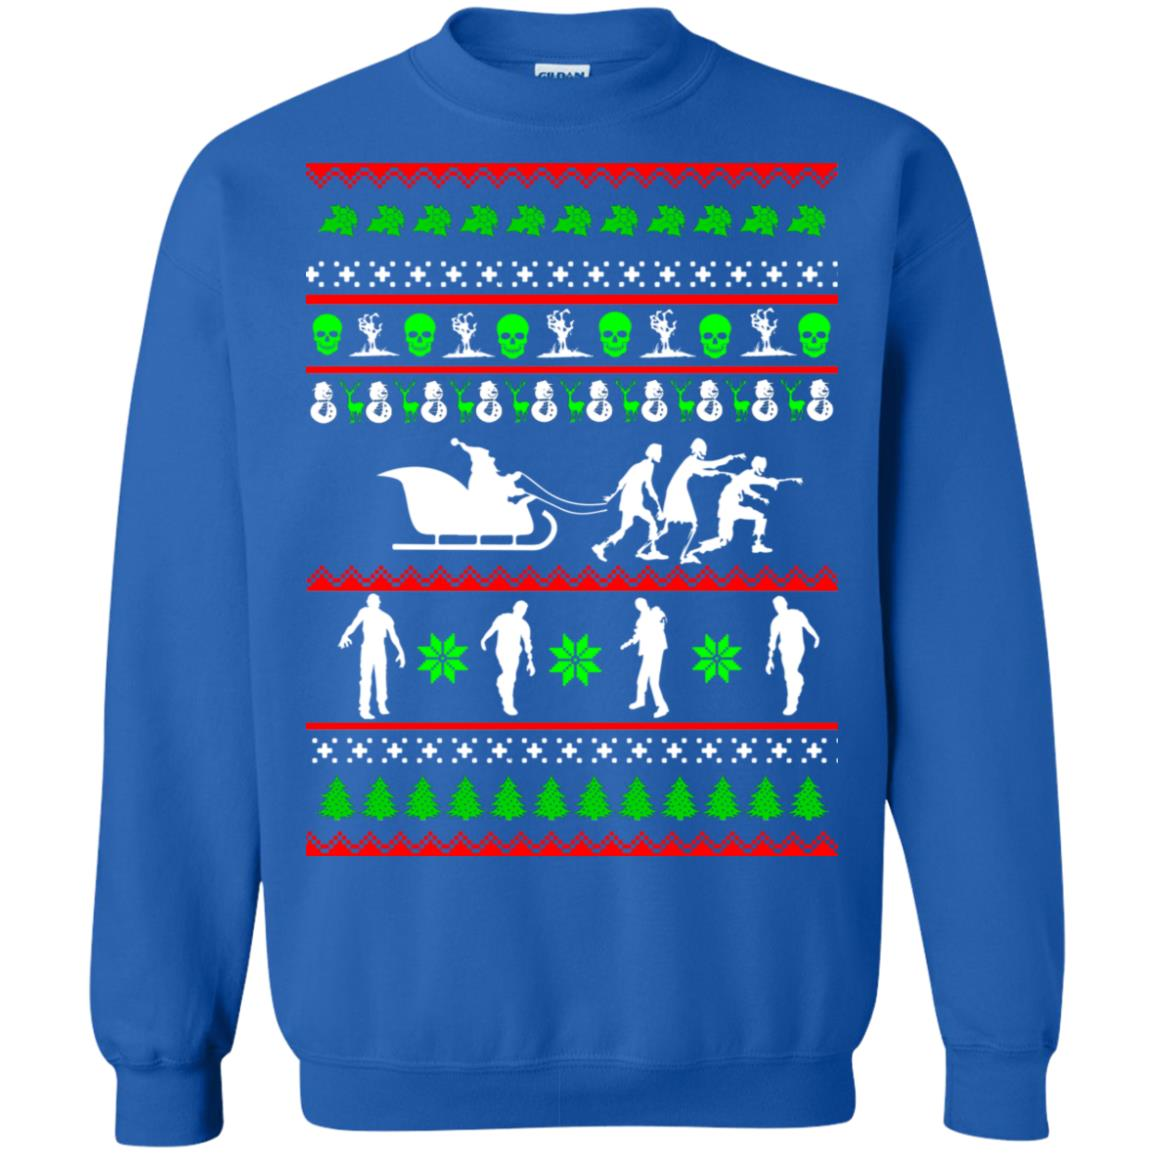 Zombie Christmas sweater, long sleeve, t-shirt, hoodie - Dovetees.com